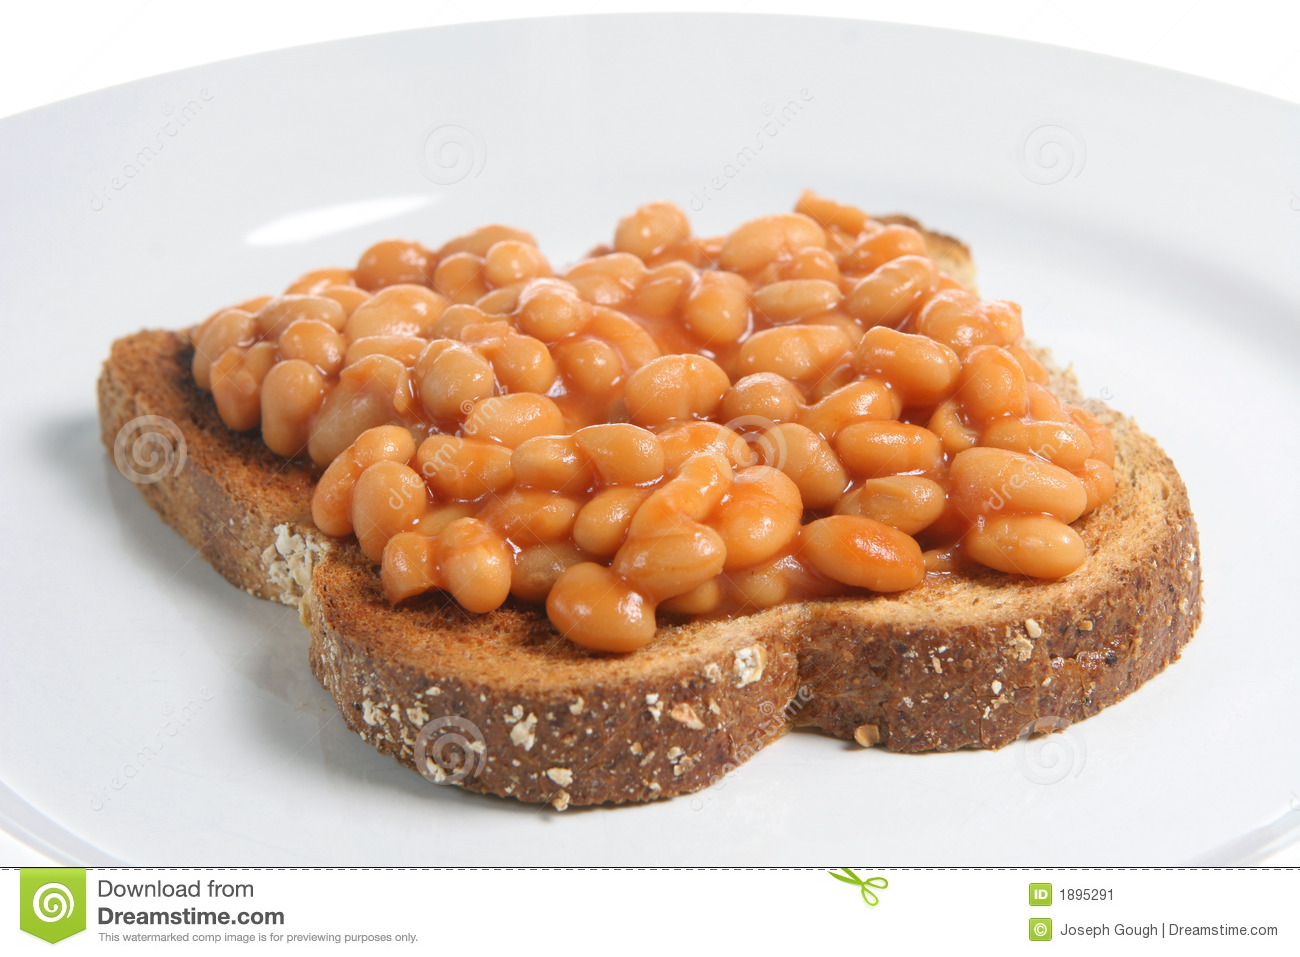 Baked beans in tomato sauce on a slice of wholemeal toast.